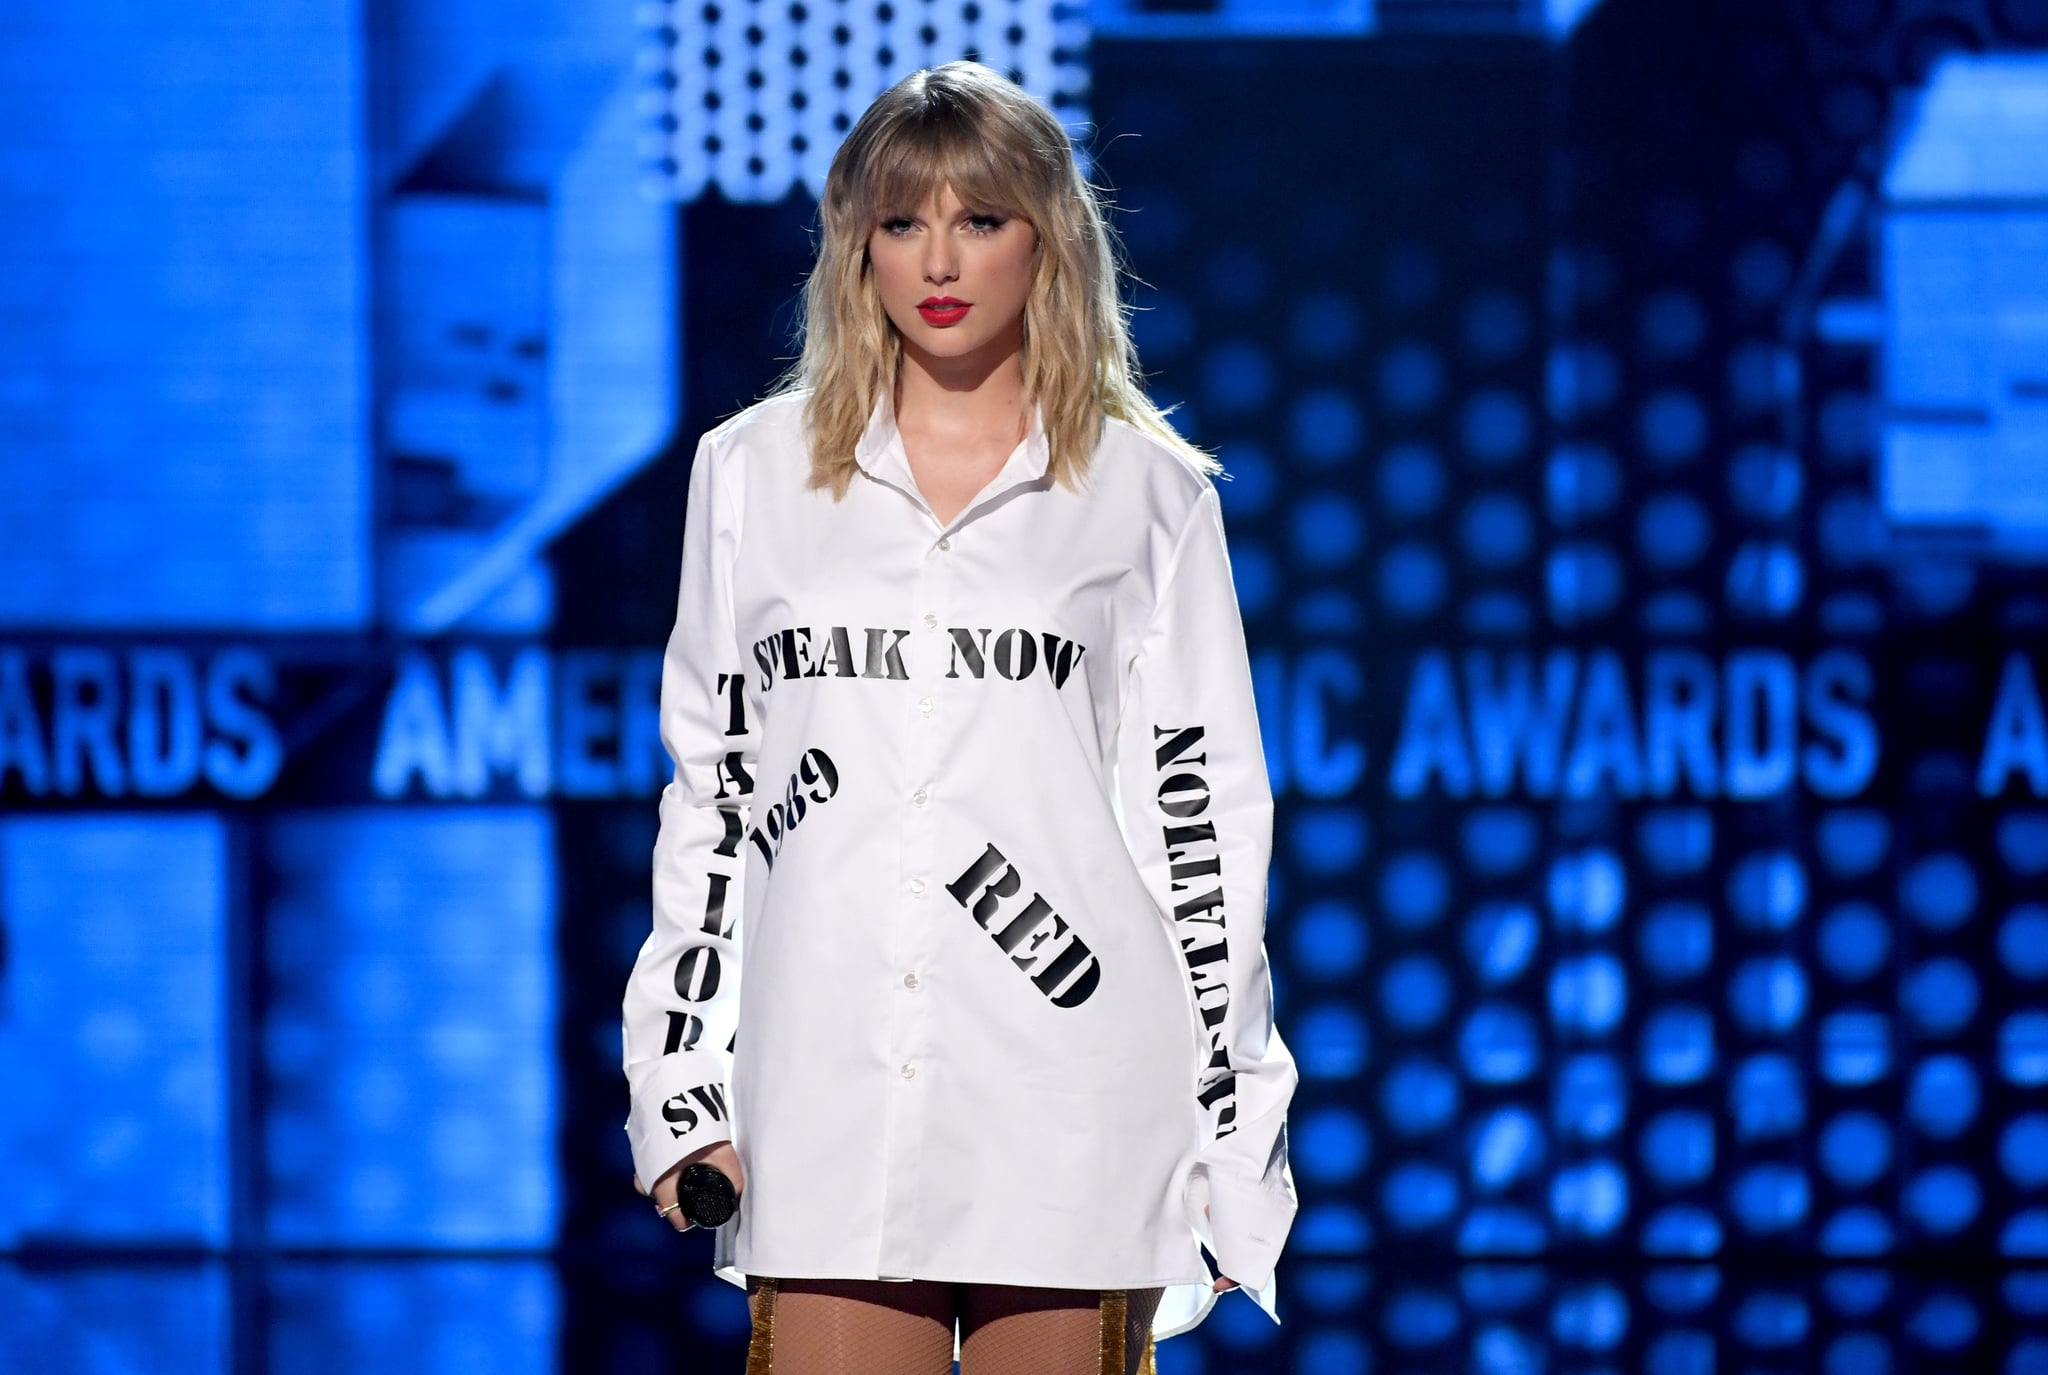 LOS ANGELES, CALIFORNIA - NOVEMBER 24: Taylor Swift performs onstage during the 2019 American Music Awards at Microsoft Theater on November 24, 2019 in Los Angeles, California. (Photo by Kevin Winter/Getty Images for dcp)